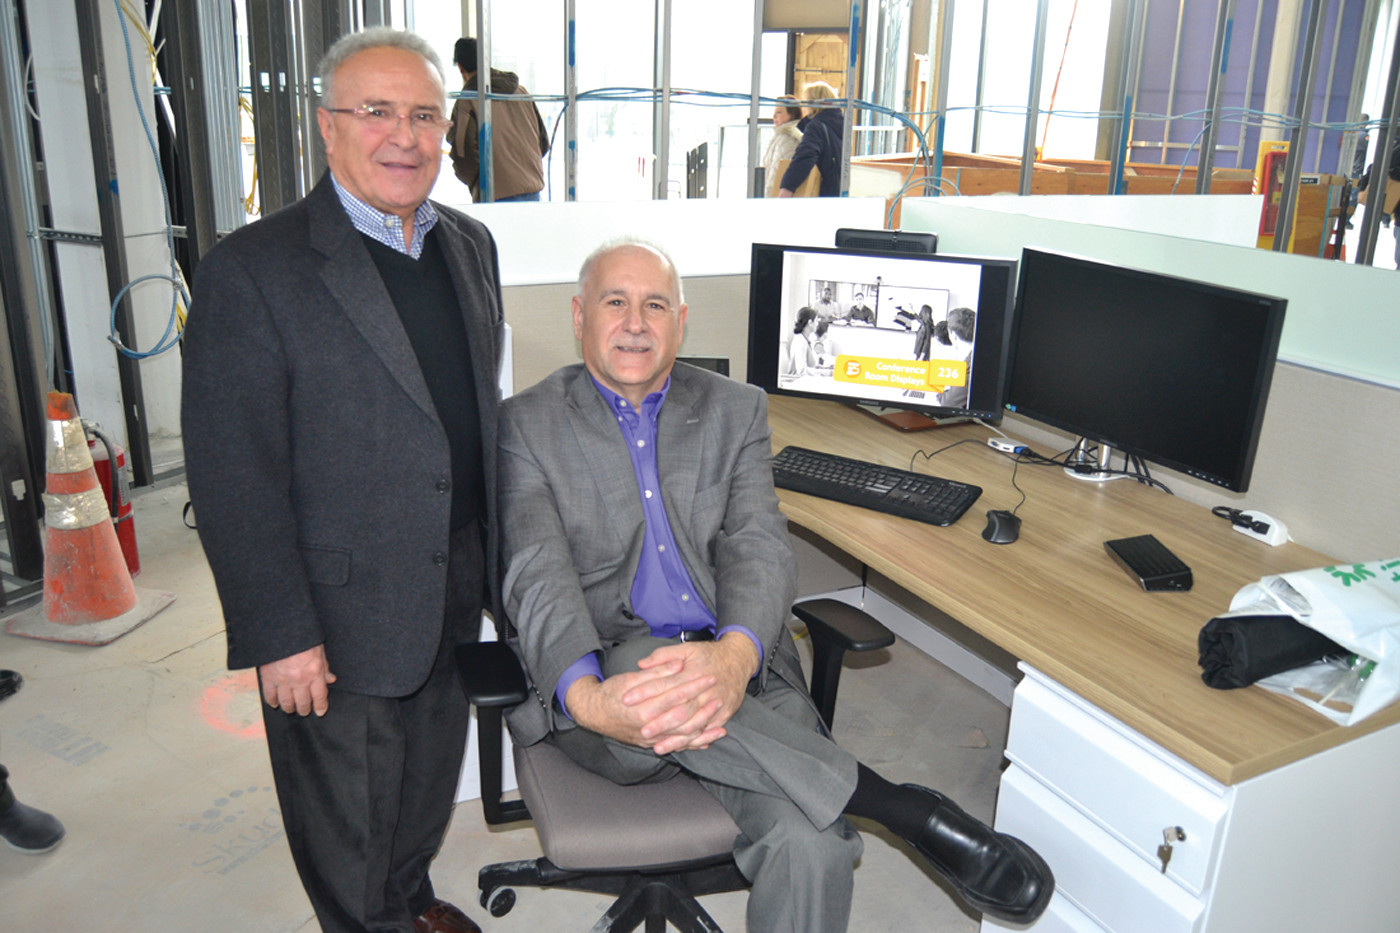 North Providence Mayor Mayor Charles Lombardi and Johnston Mayor Joseph Polisena try out proposed office furniture.